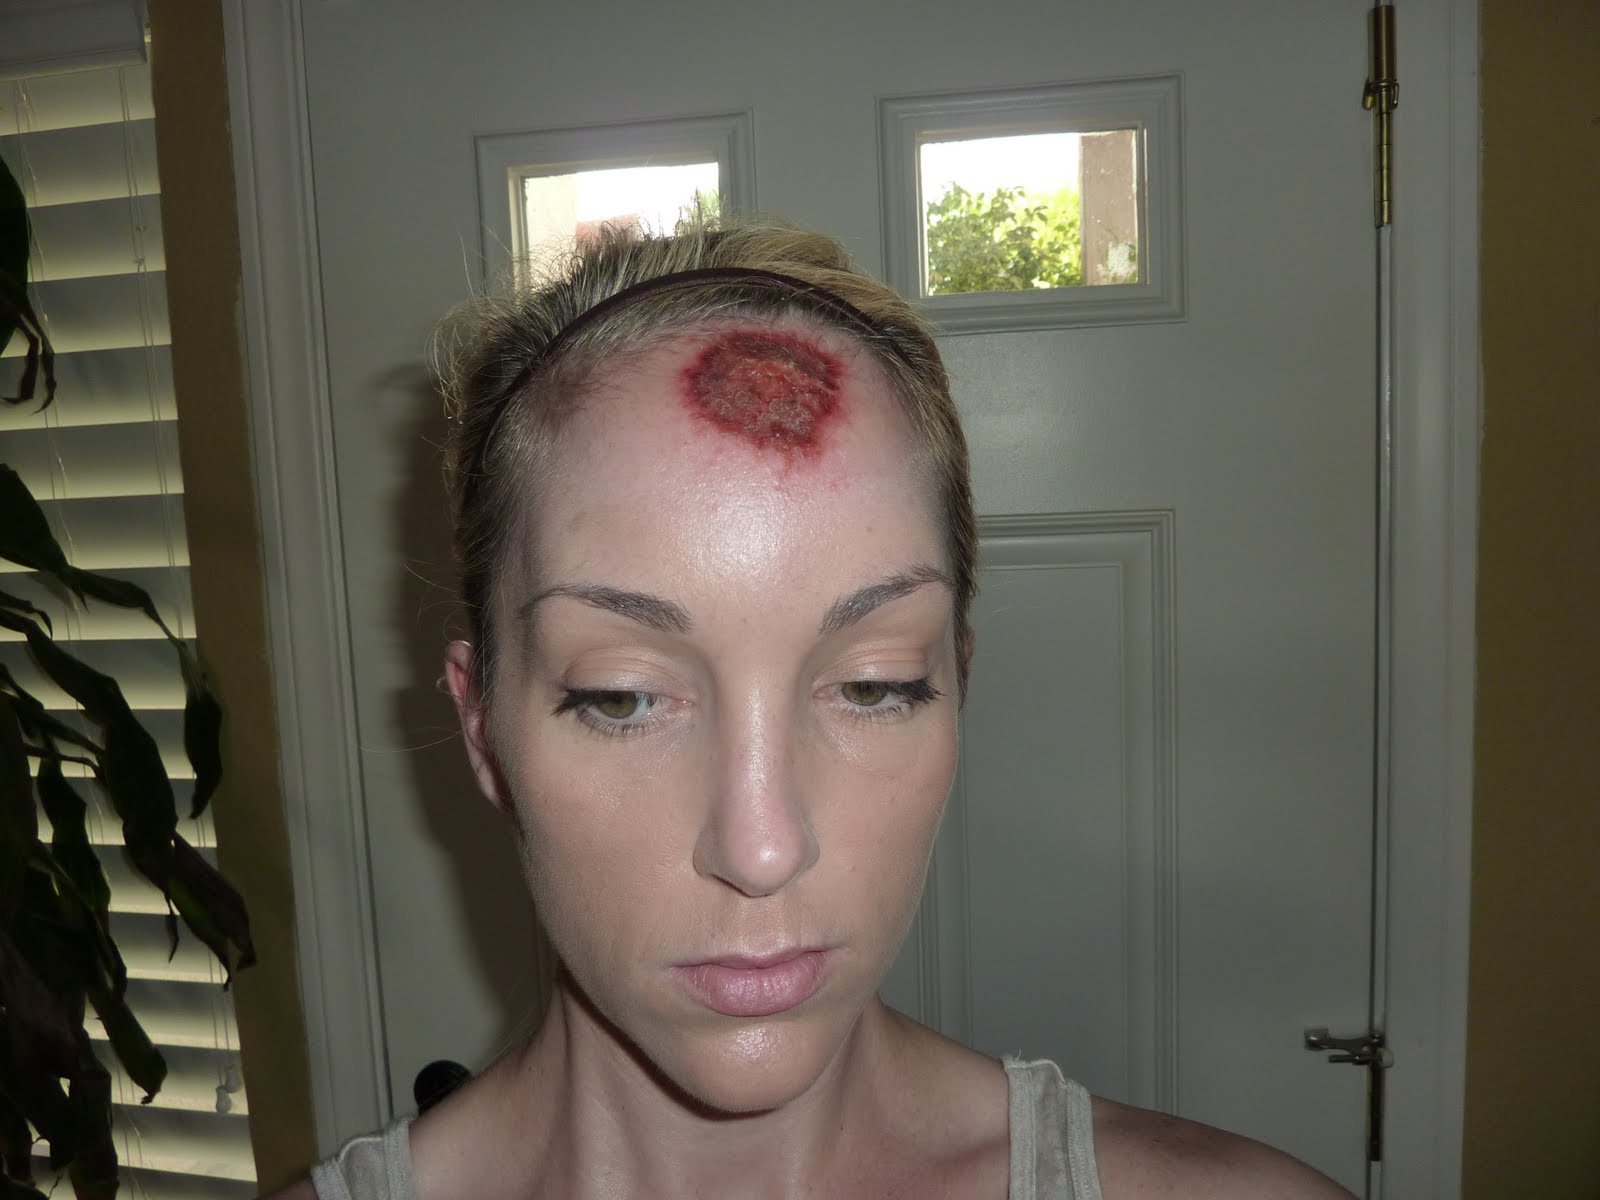 Facial skin cancer swelling